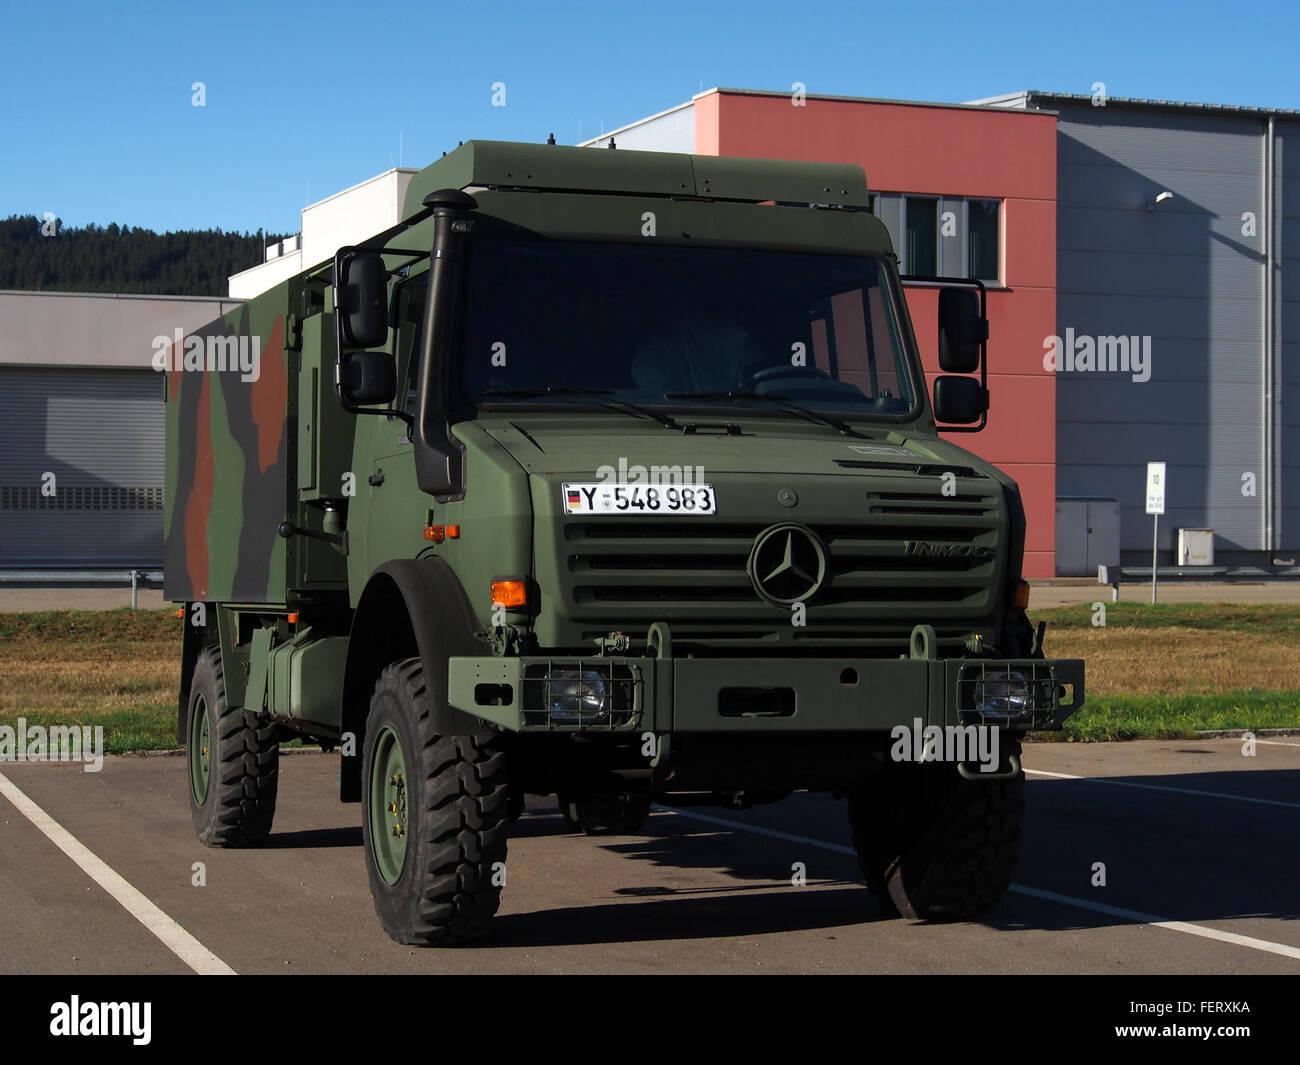 Unimog Stock Photos & Unimog Stock Images - Page 4 - Alamy